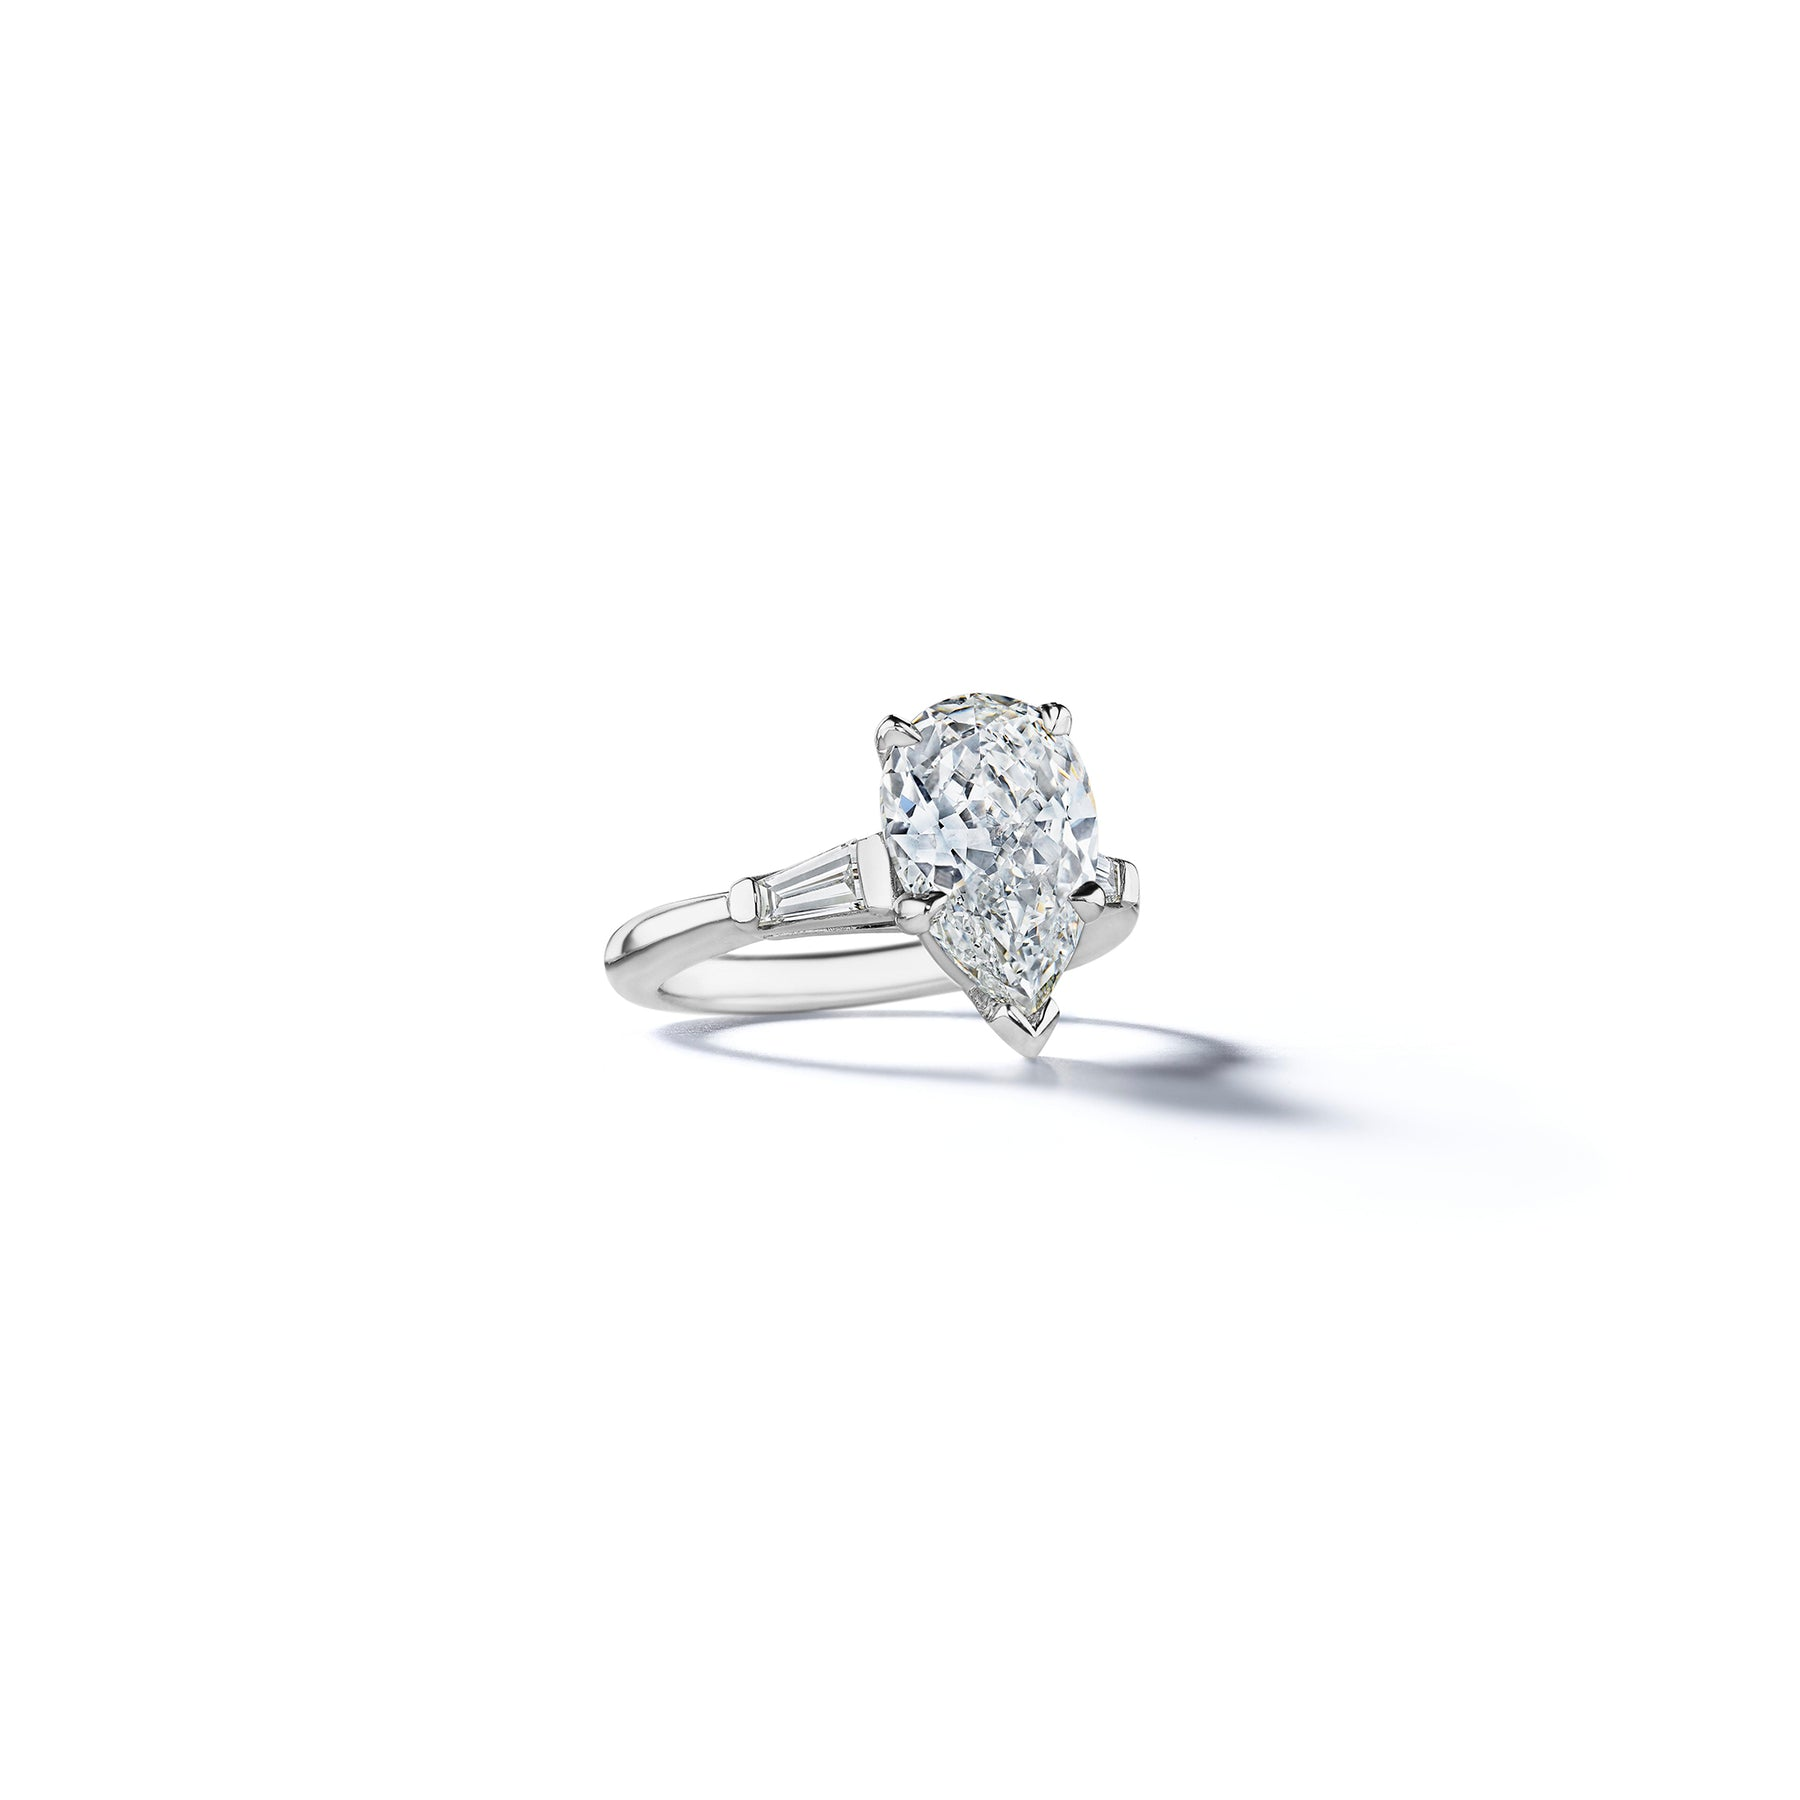 Charlton Pear Baguette Diamond Engagement Ring_Platinum